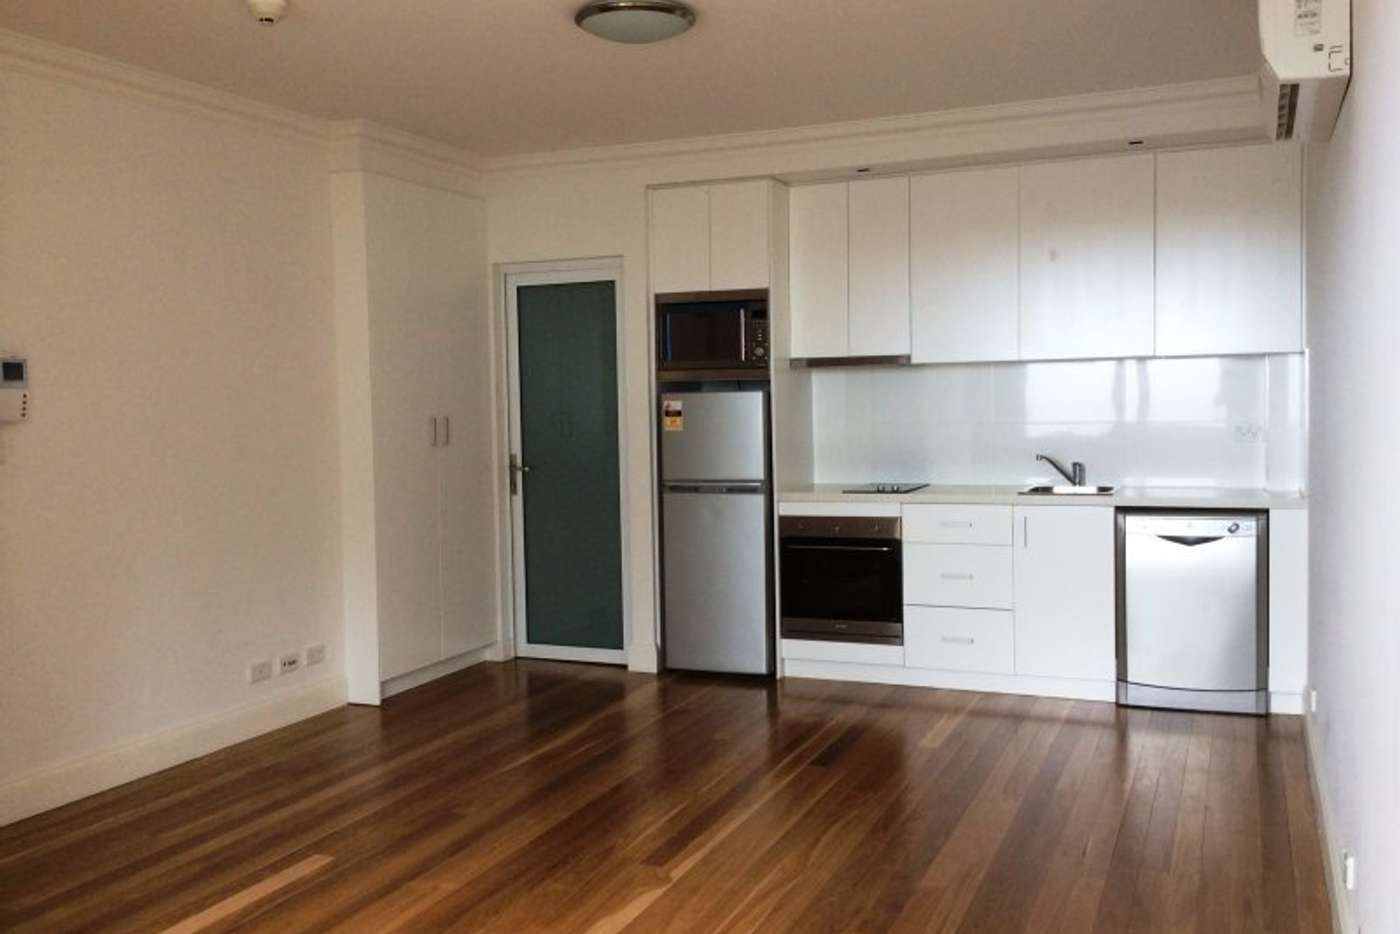 Main view of Homely studio listing, 2/634 King Street, Newtown NSW 2042